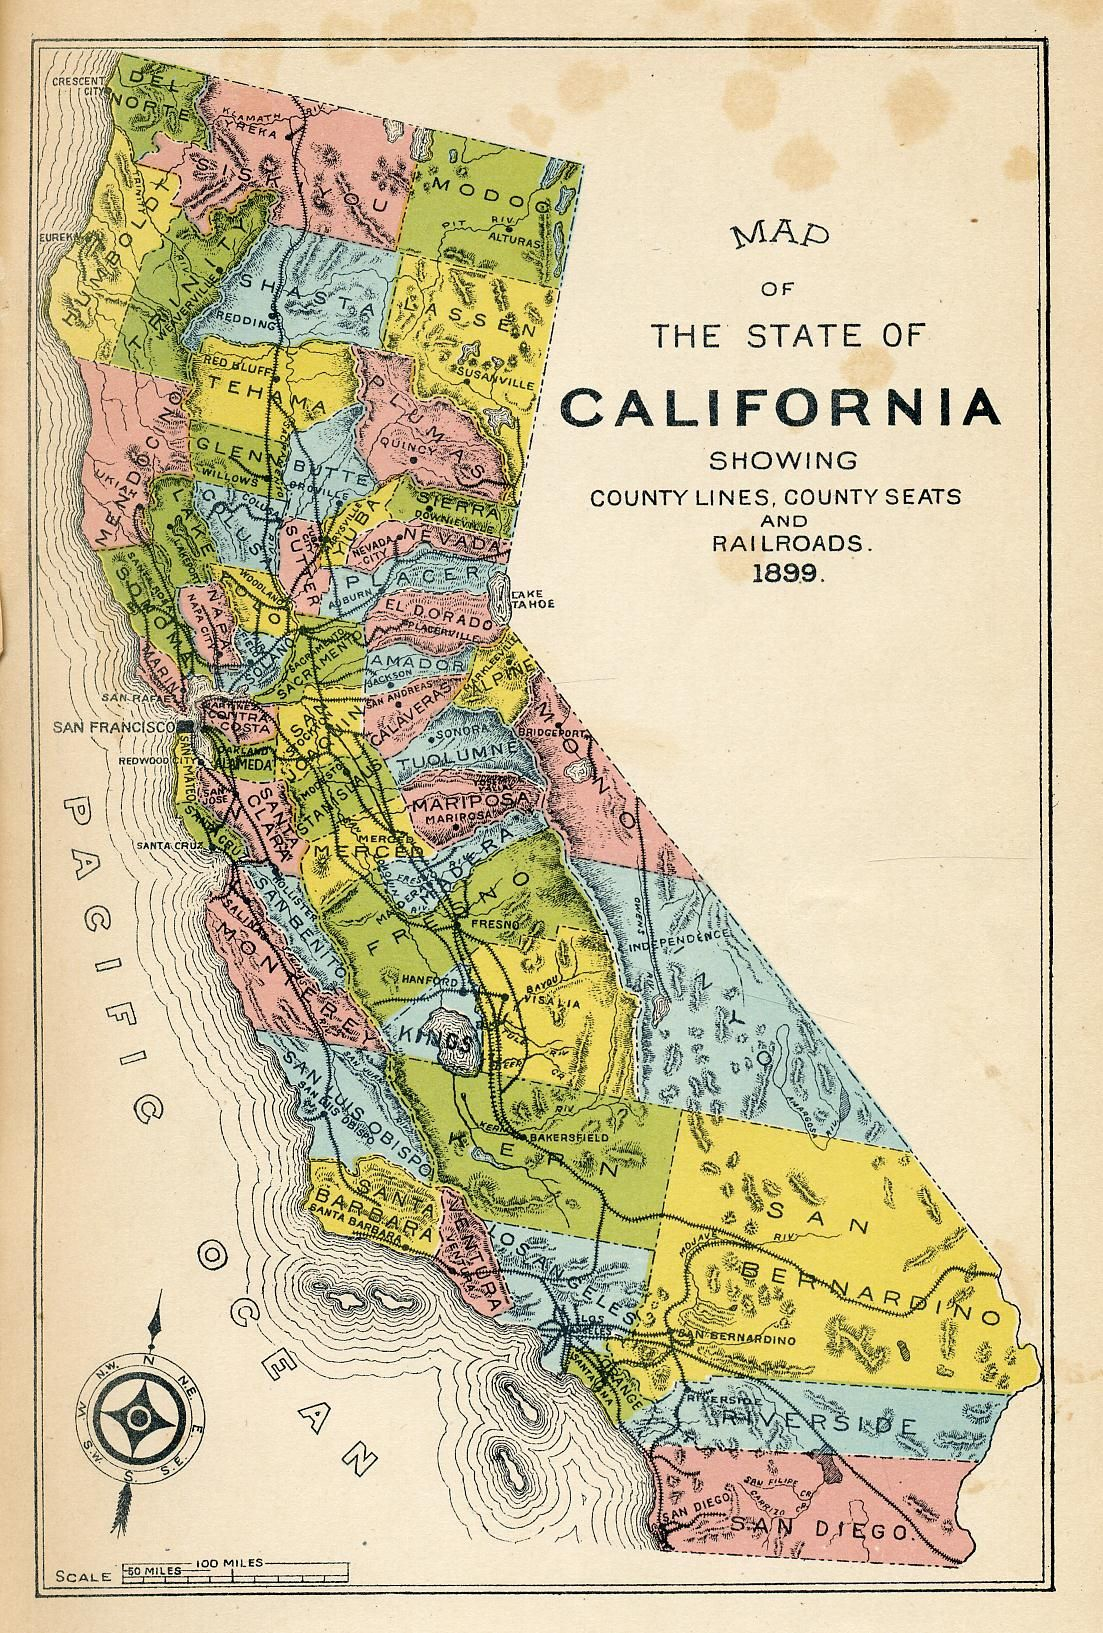 Sept. 9, 1850, California becomes the 31st U.S. state